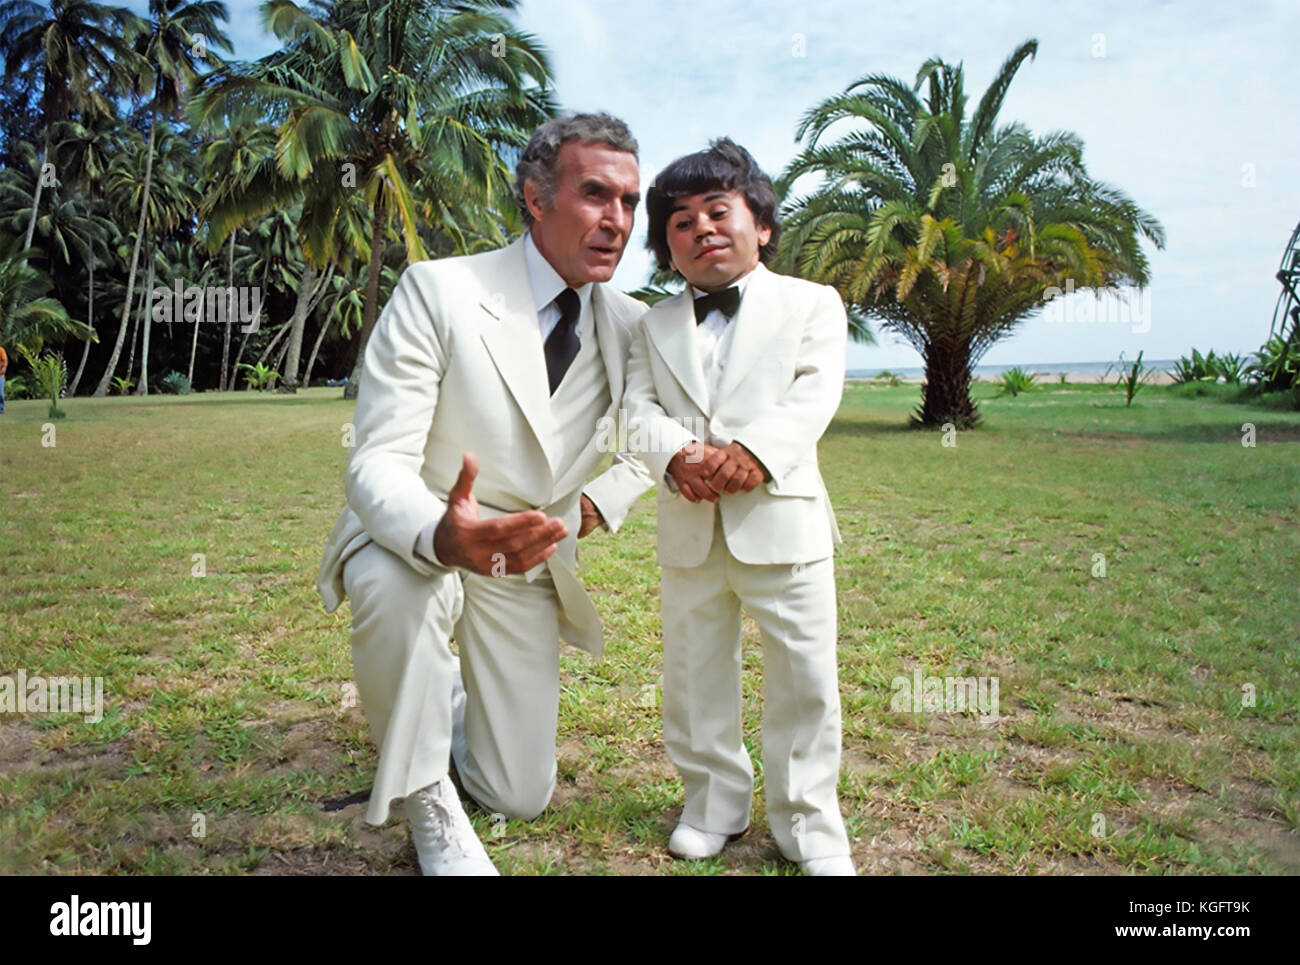 FANTASY ISLAND ABC TV series 1977-1984 with Ricardo Montalban at left and Herve Villechaize - Stock Image